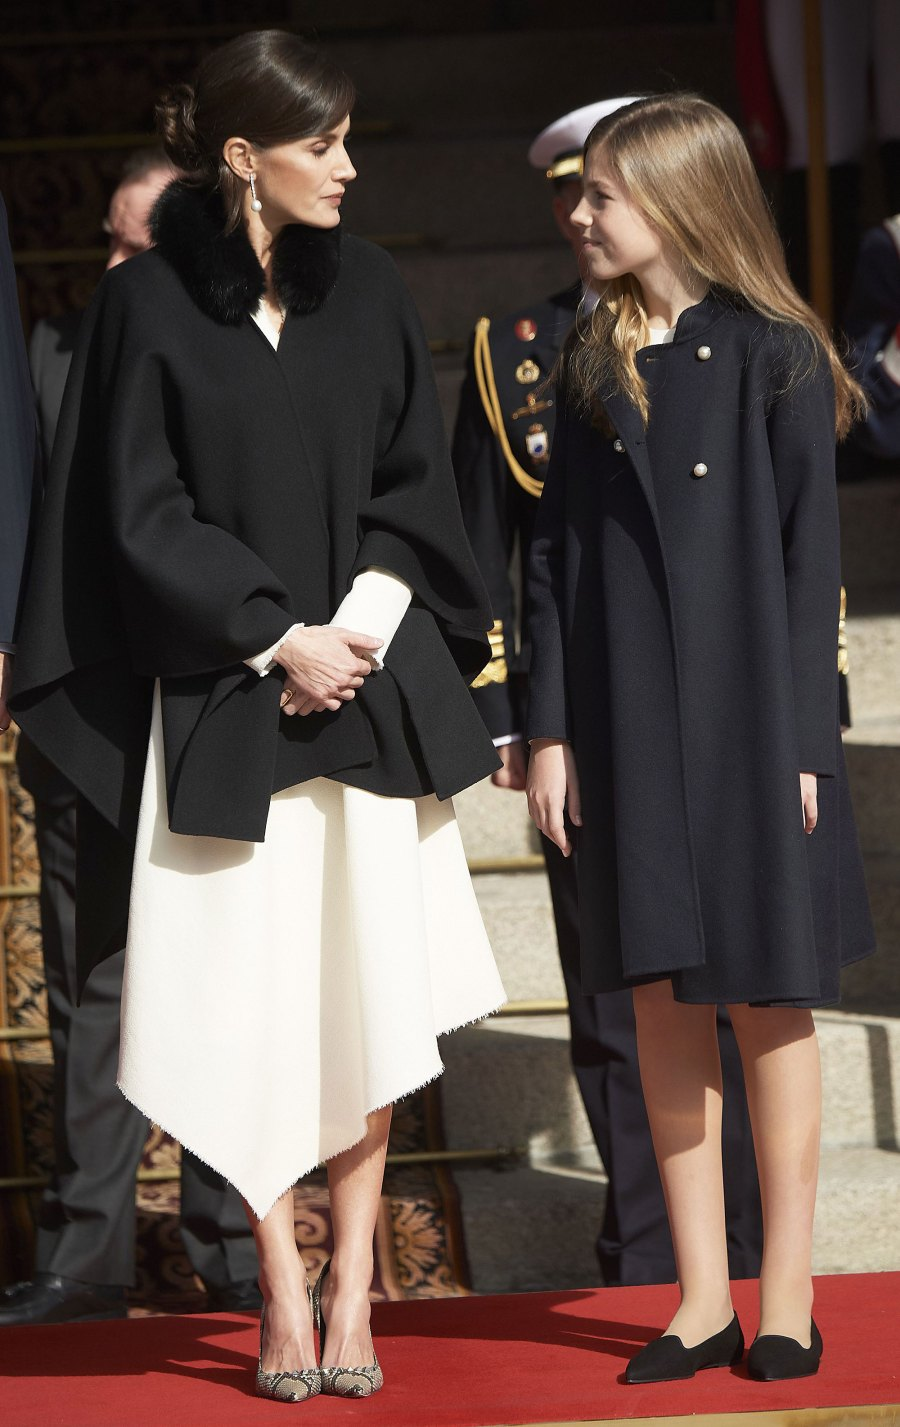 Queen Letizia Asymmetrical Dress February 3, 2020